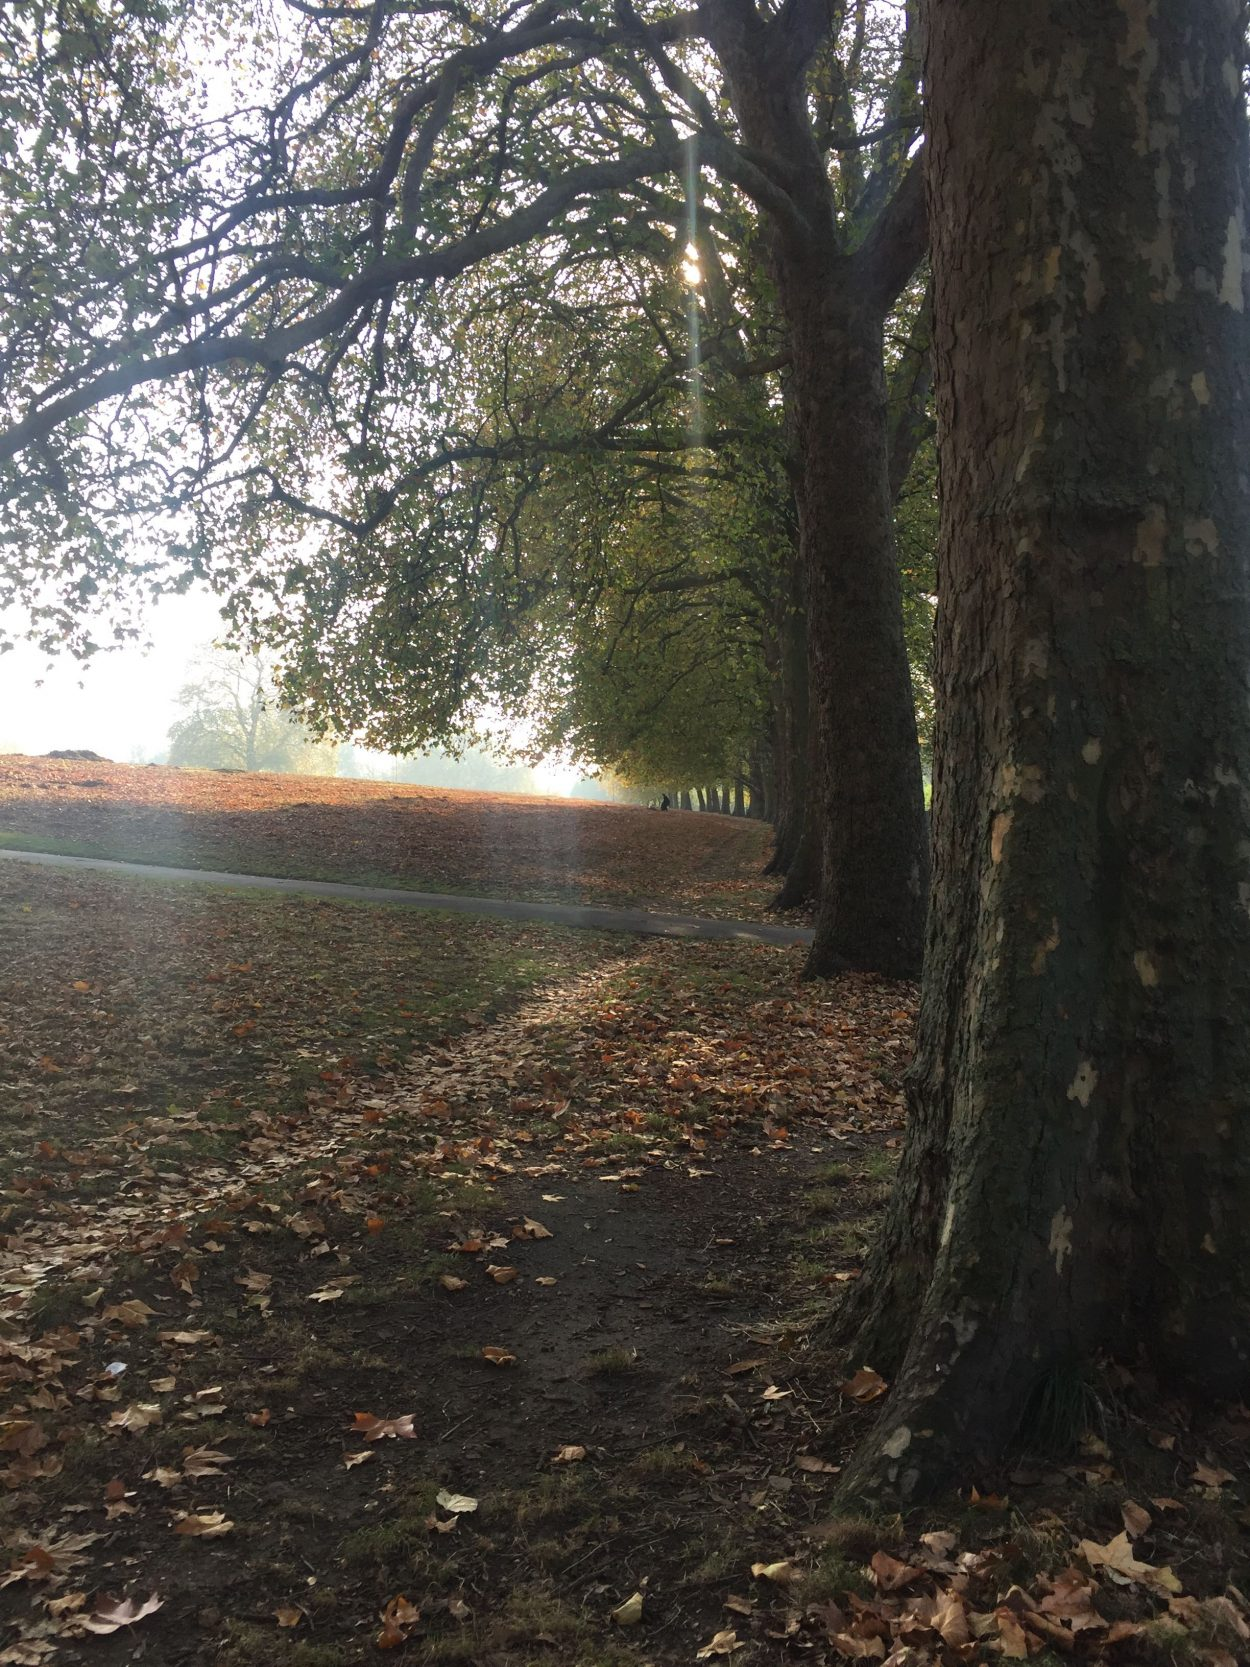 The plane trees in Hackney Downs in London losing their leaves